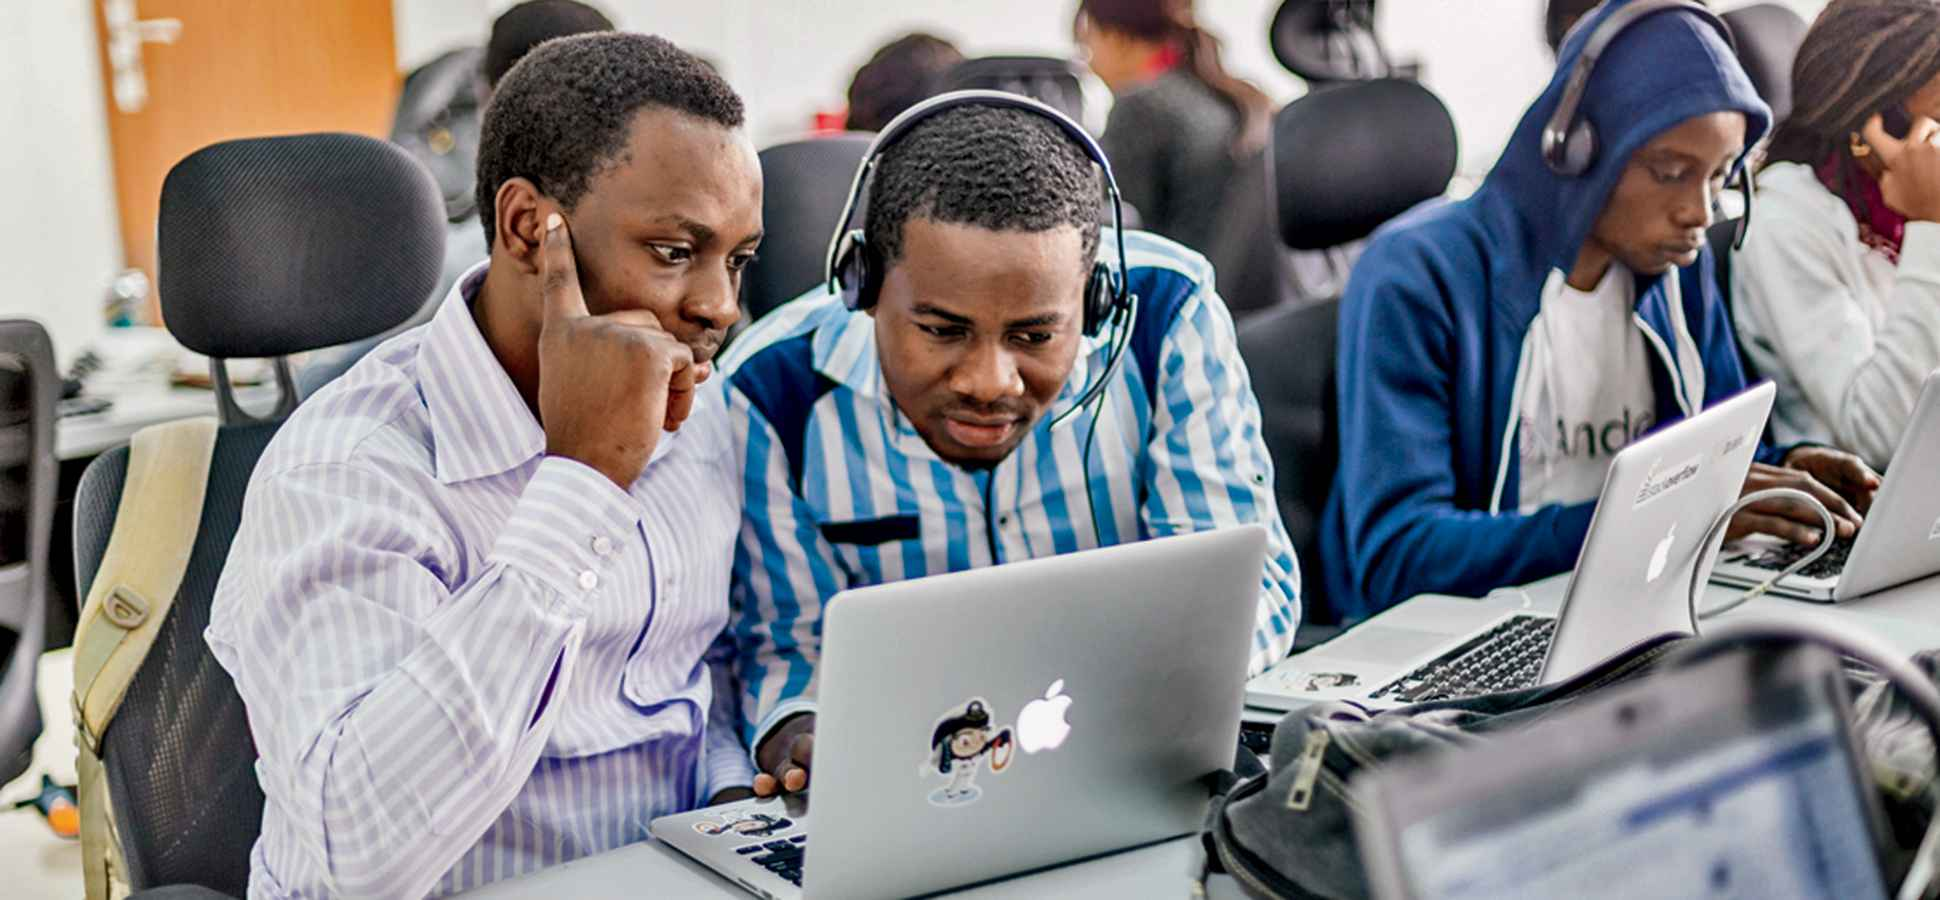 In Africa, private equity firms are reducing their funding sizes to target startups | TechCabal